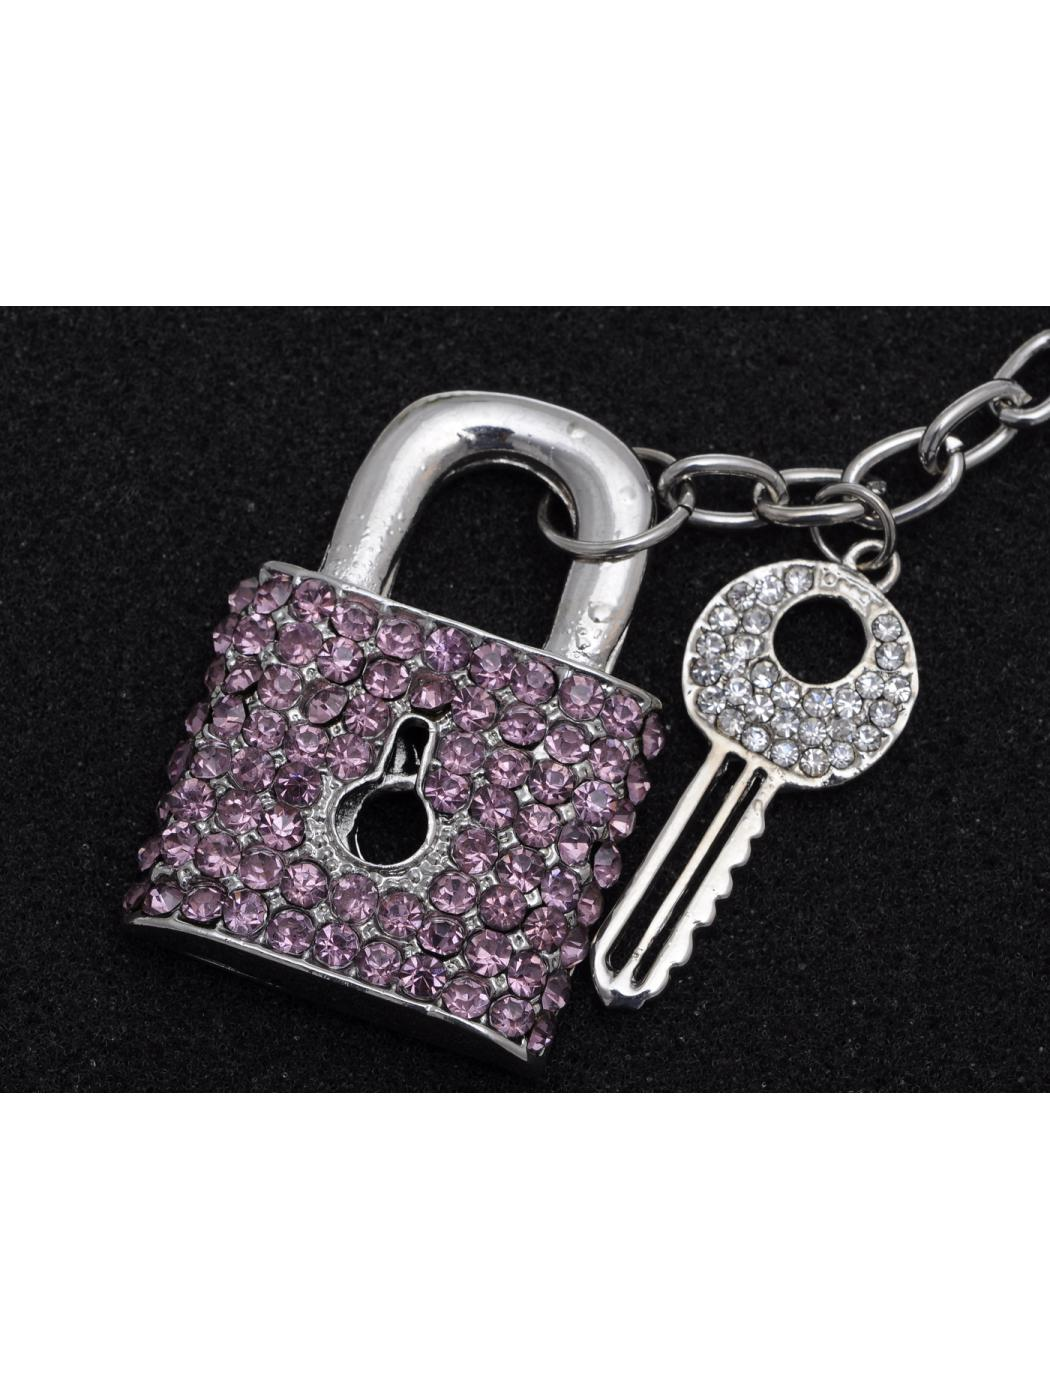 Silver Tone Rose Pink Crystal Rhinestone Deadbolt Key Locket Hook Clip Keychain